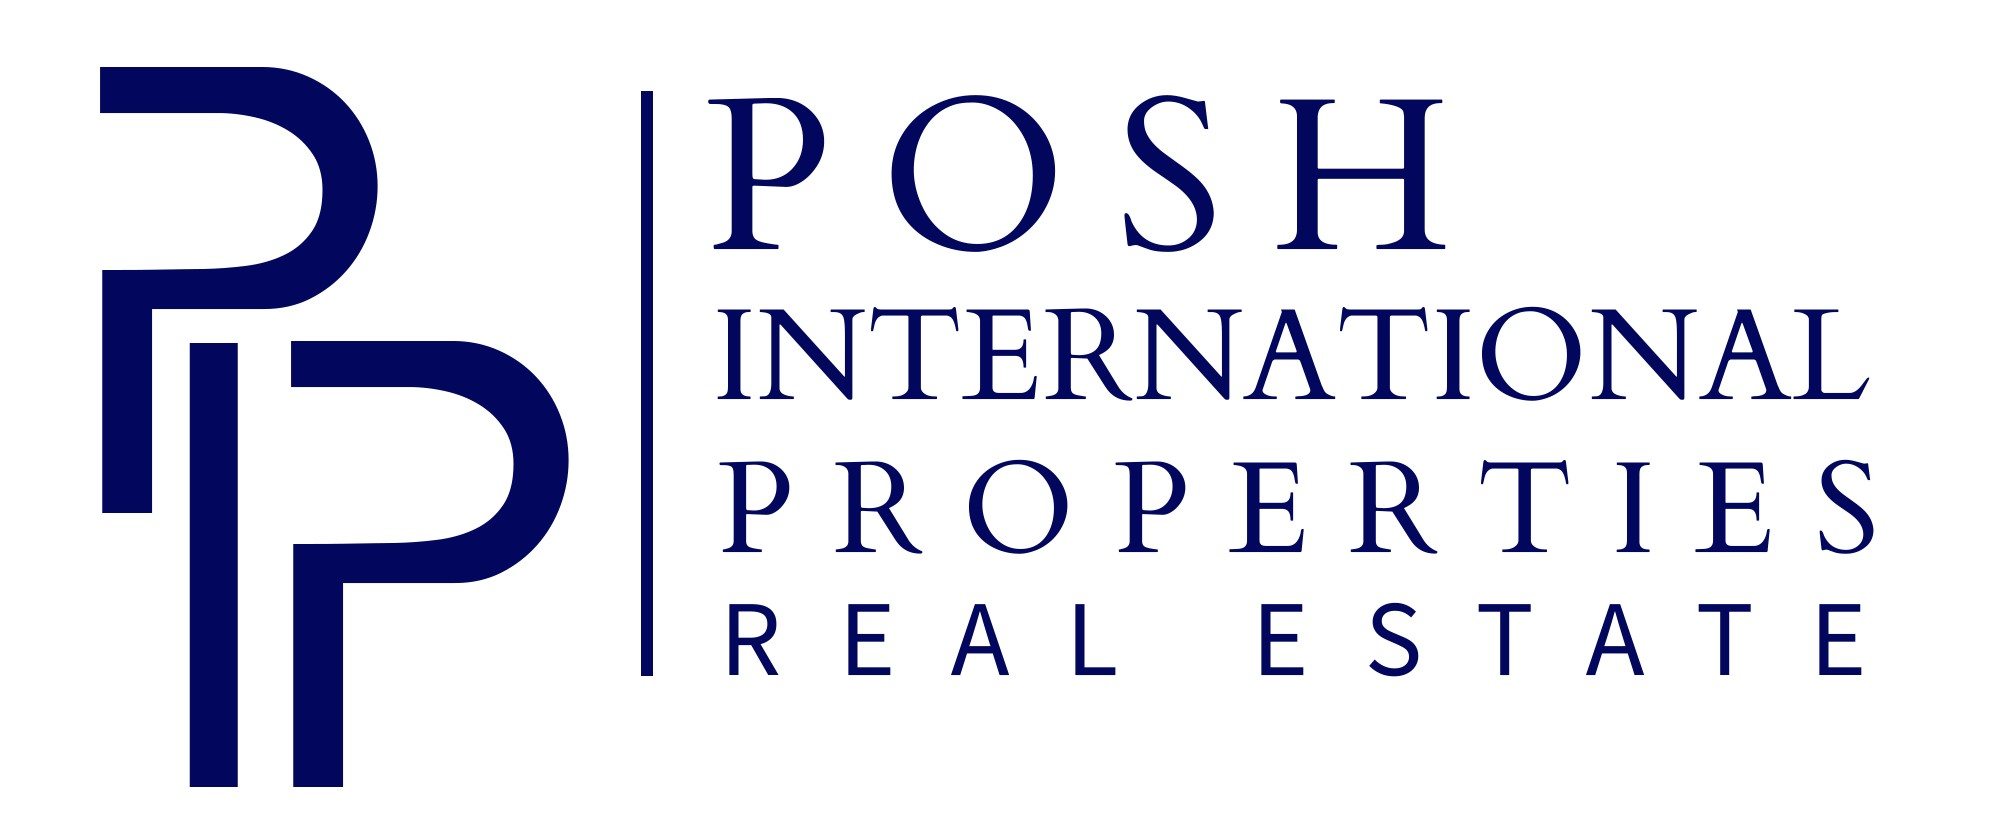 Immobilien Florida USA - Posh International Properties - Immobilien Florida, Naples, Bonita Springs, Bonita Beach, Estero, Marco Island, Fort Myers Beach, Cape Coral, Fort Myers, Sanibel Island, Deutscher Immobilienmakler Florida, Makler, Hausmakler, Luxusmakler, Wohnungsmakler, Villenmakler, Luxusimmobilienmakler - Immobilien Florida USA